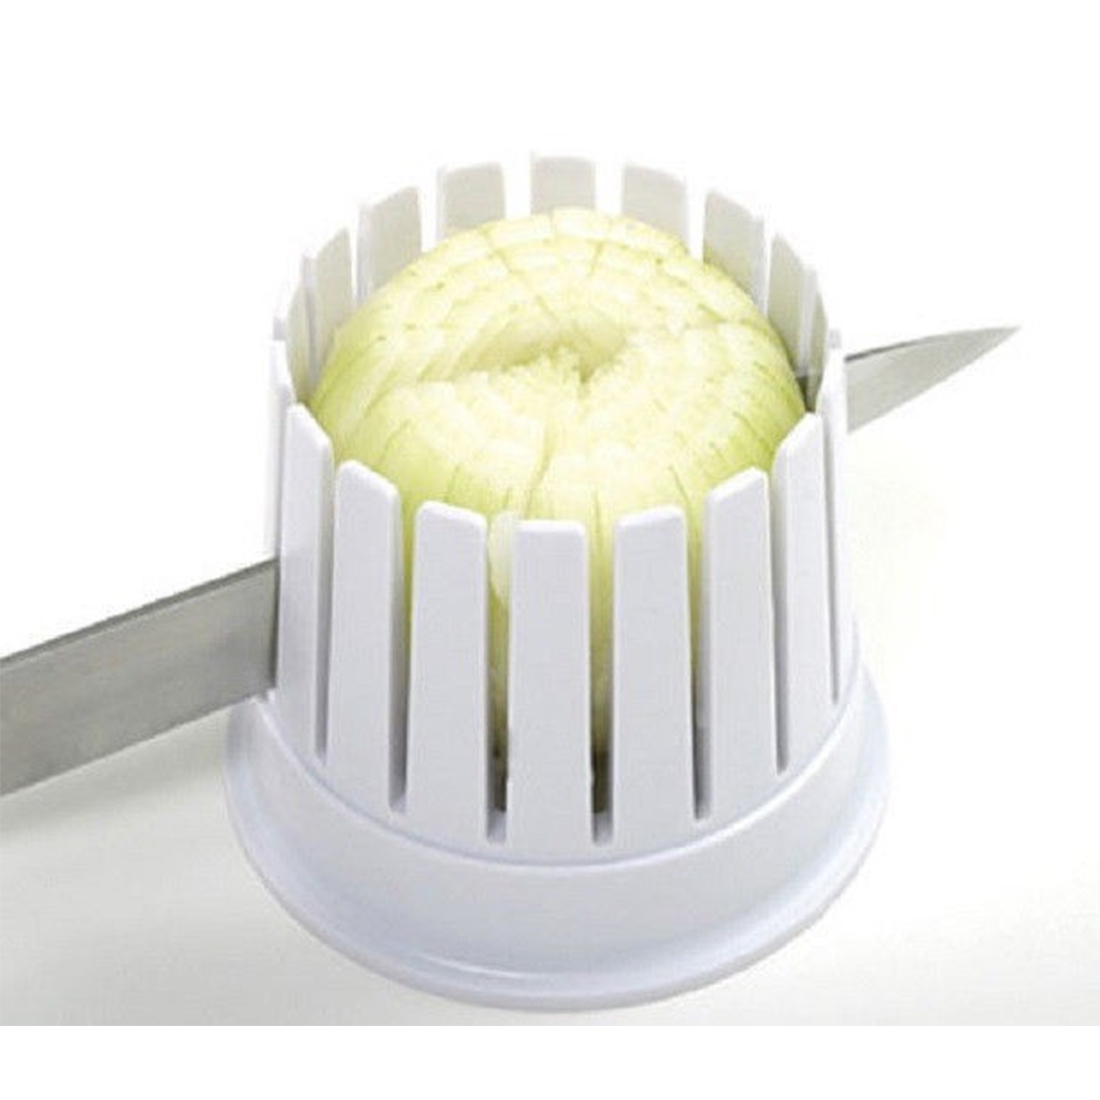 Practical Kitchen Onion Blossom Maker Onion Slicer Cutter Blossom Maker Fruit & Vegetable Tools Cutting Cut Onion